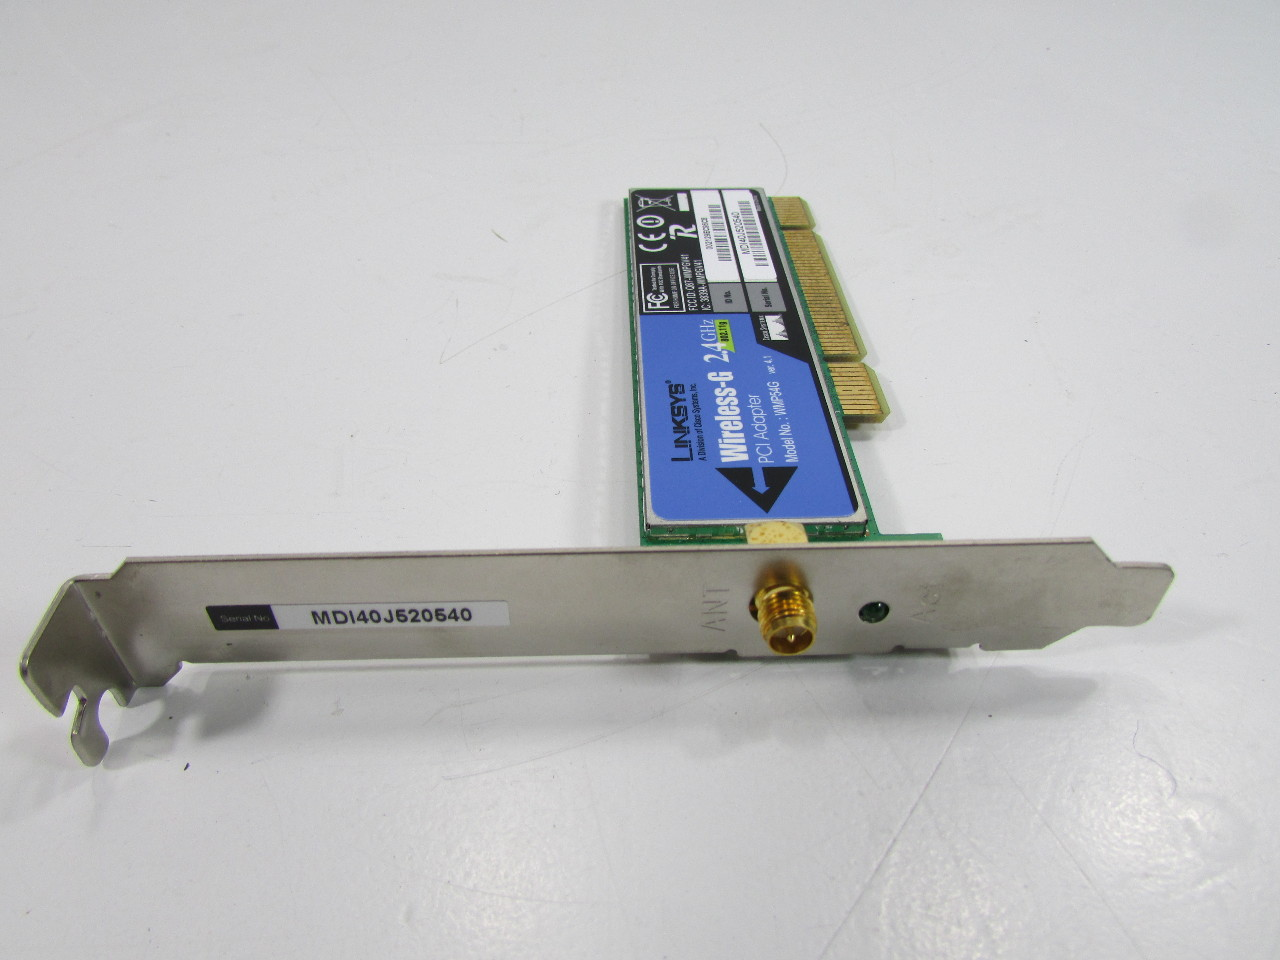 WIRELESS G PCI ADAPTER WMP54G WINDOWS 8 X64 DRIVER